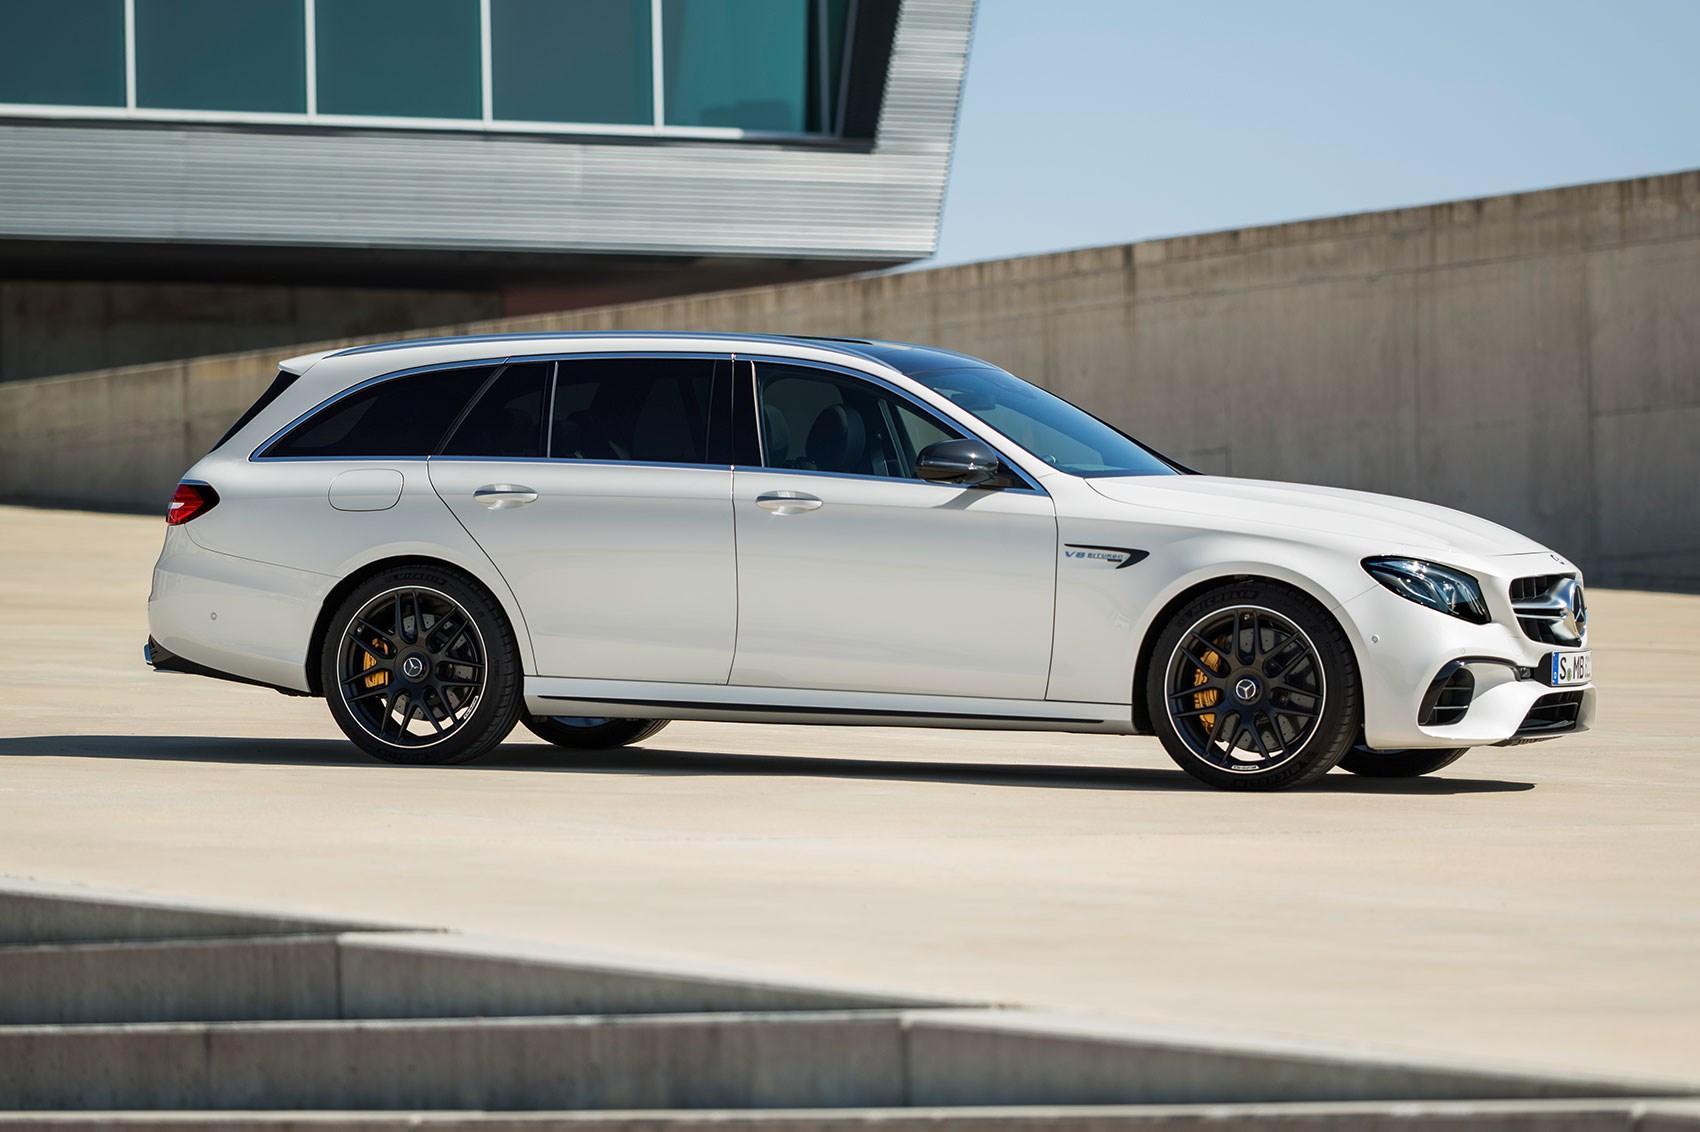 Mercedes amg e63 4matic estate prices revealed for 2017 for Mercedes benz e class e63 amg